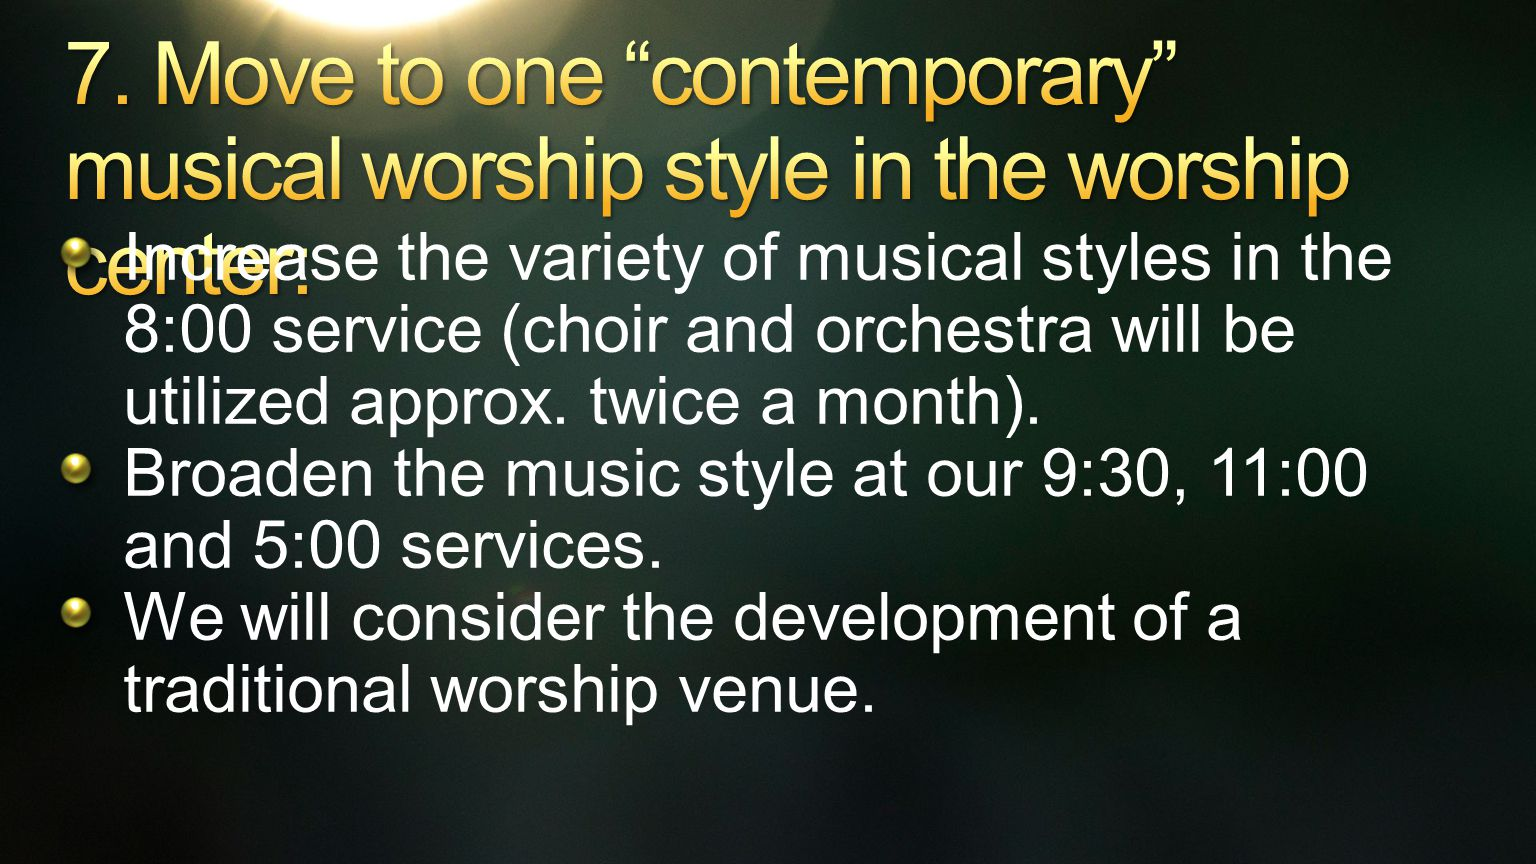 Increase the variety of musical styles in the 8:00 service (choir and orchestra will be utilized approx.